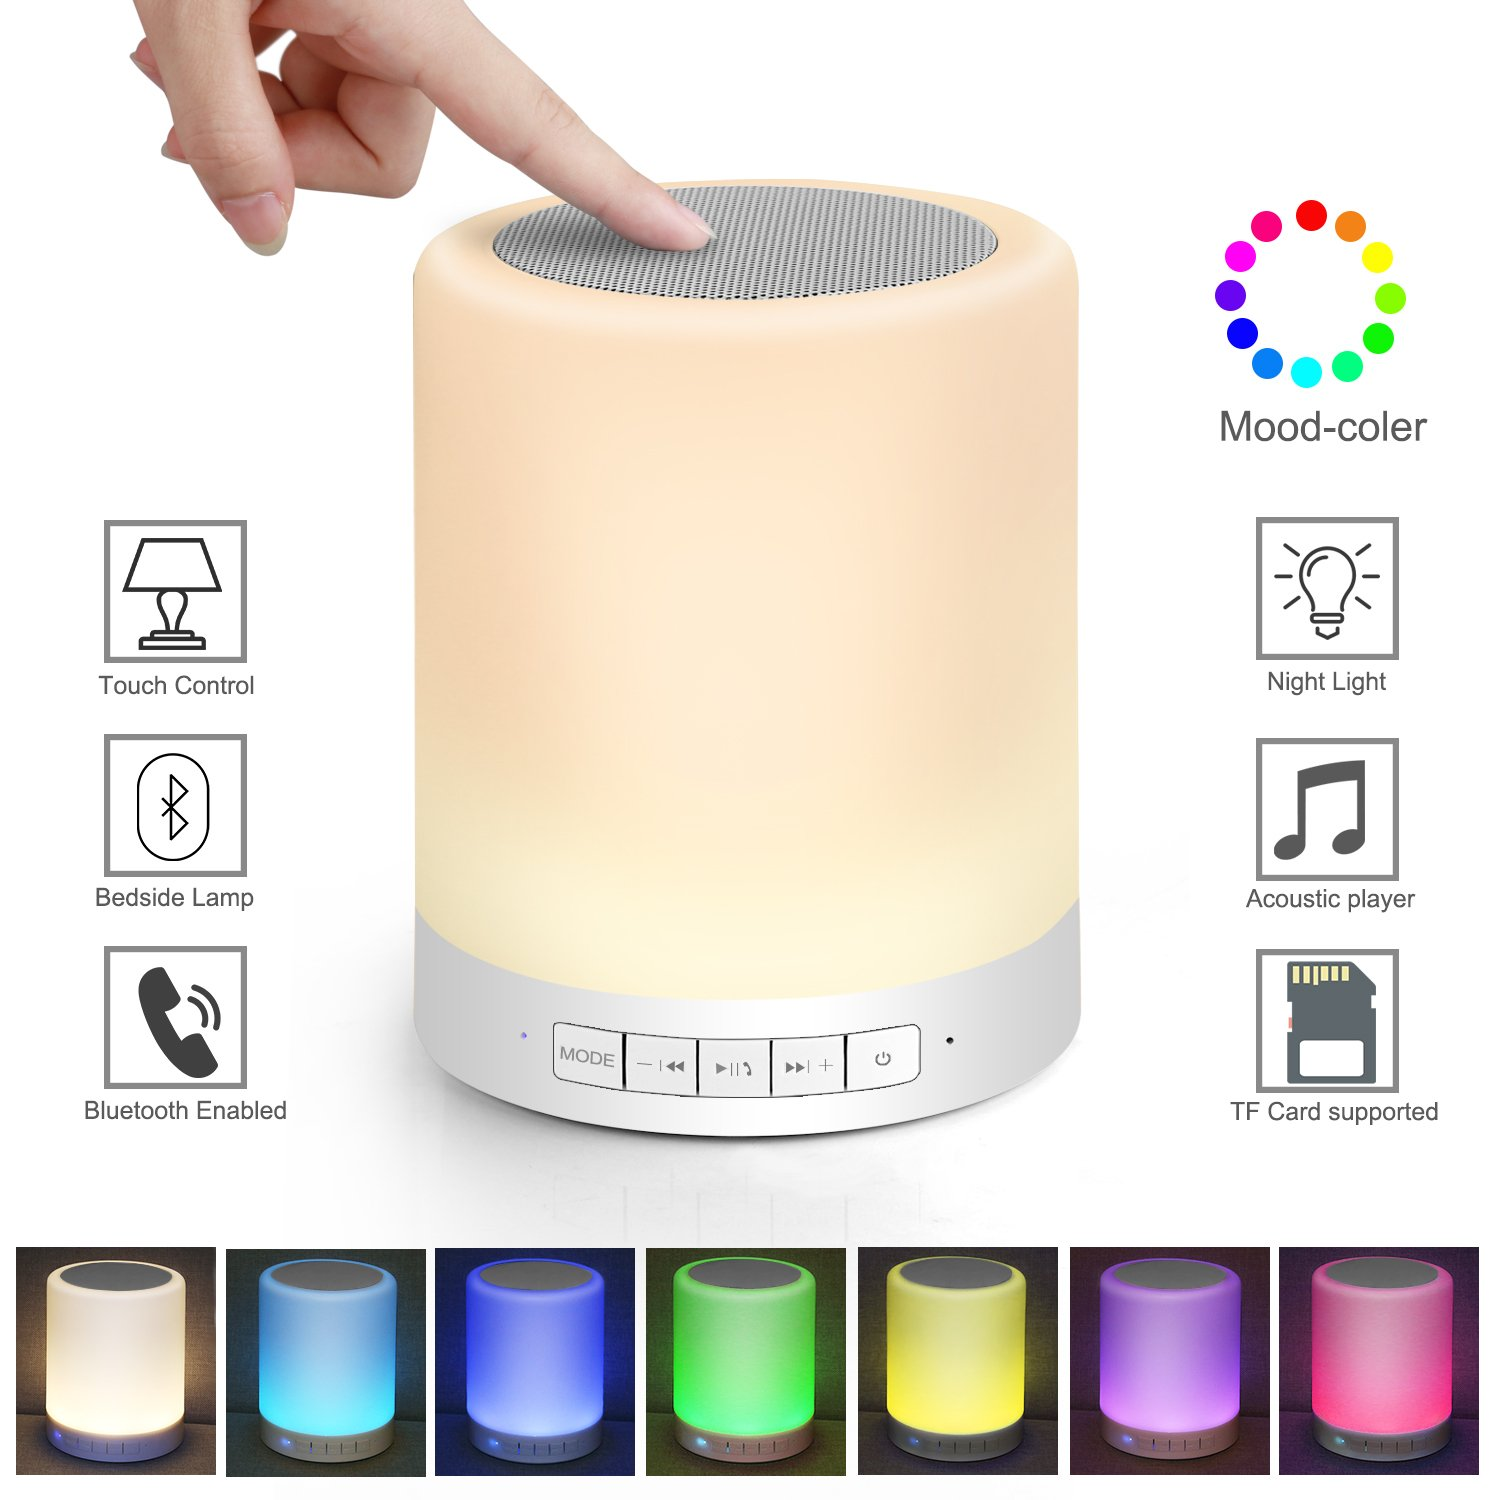 Kimfoxes Dimmable Touch Lamp Bluetooth Speaker Outdoor Portable Multicolor Night Light Music Player